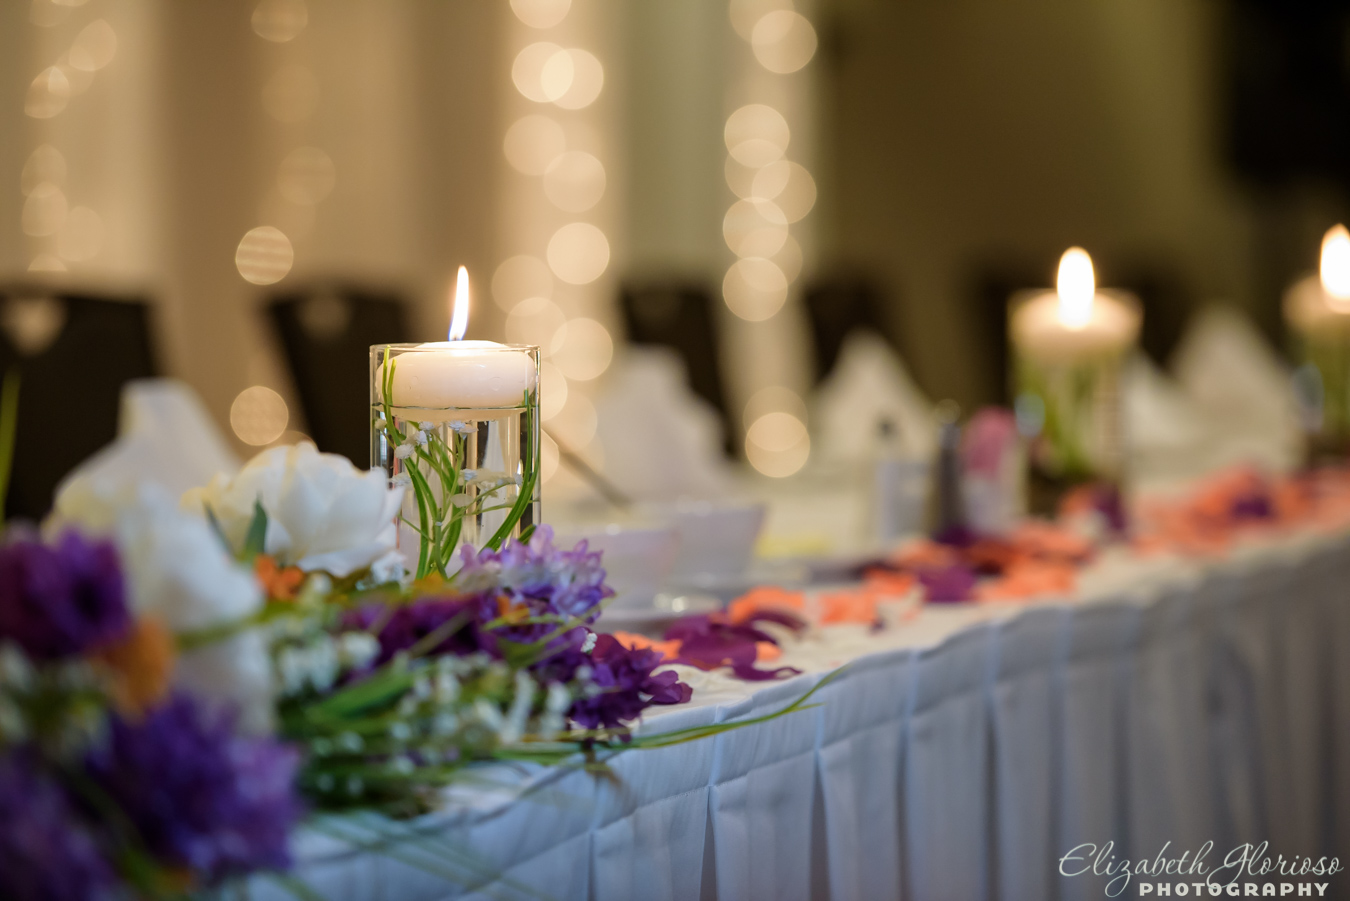 Cleveland Hilton Doubletree was a lovely venue for Ryan and Amanda's reception.